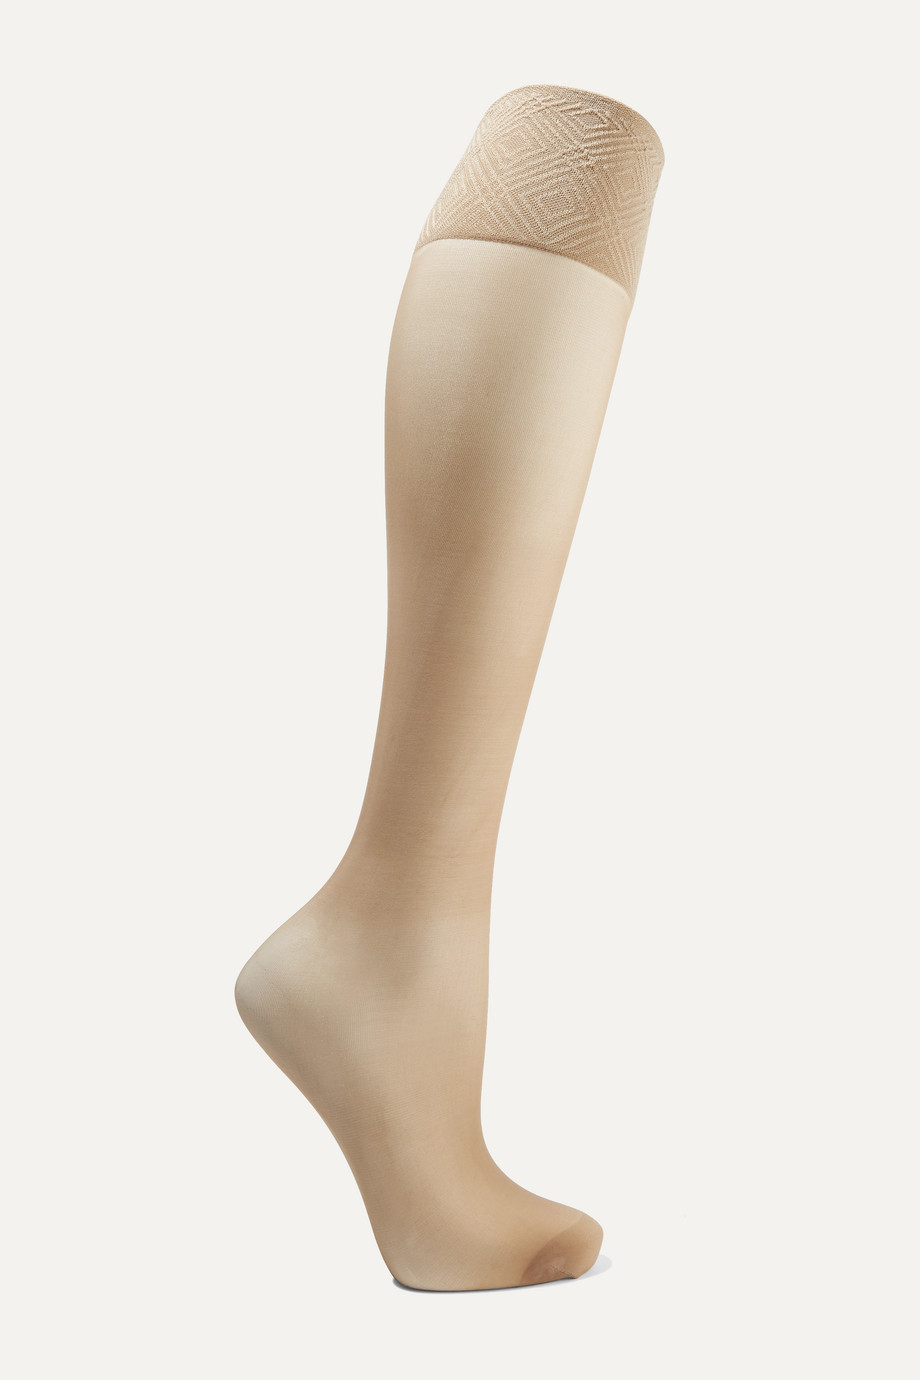 Spanx Graduated Compression 20 denier socks